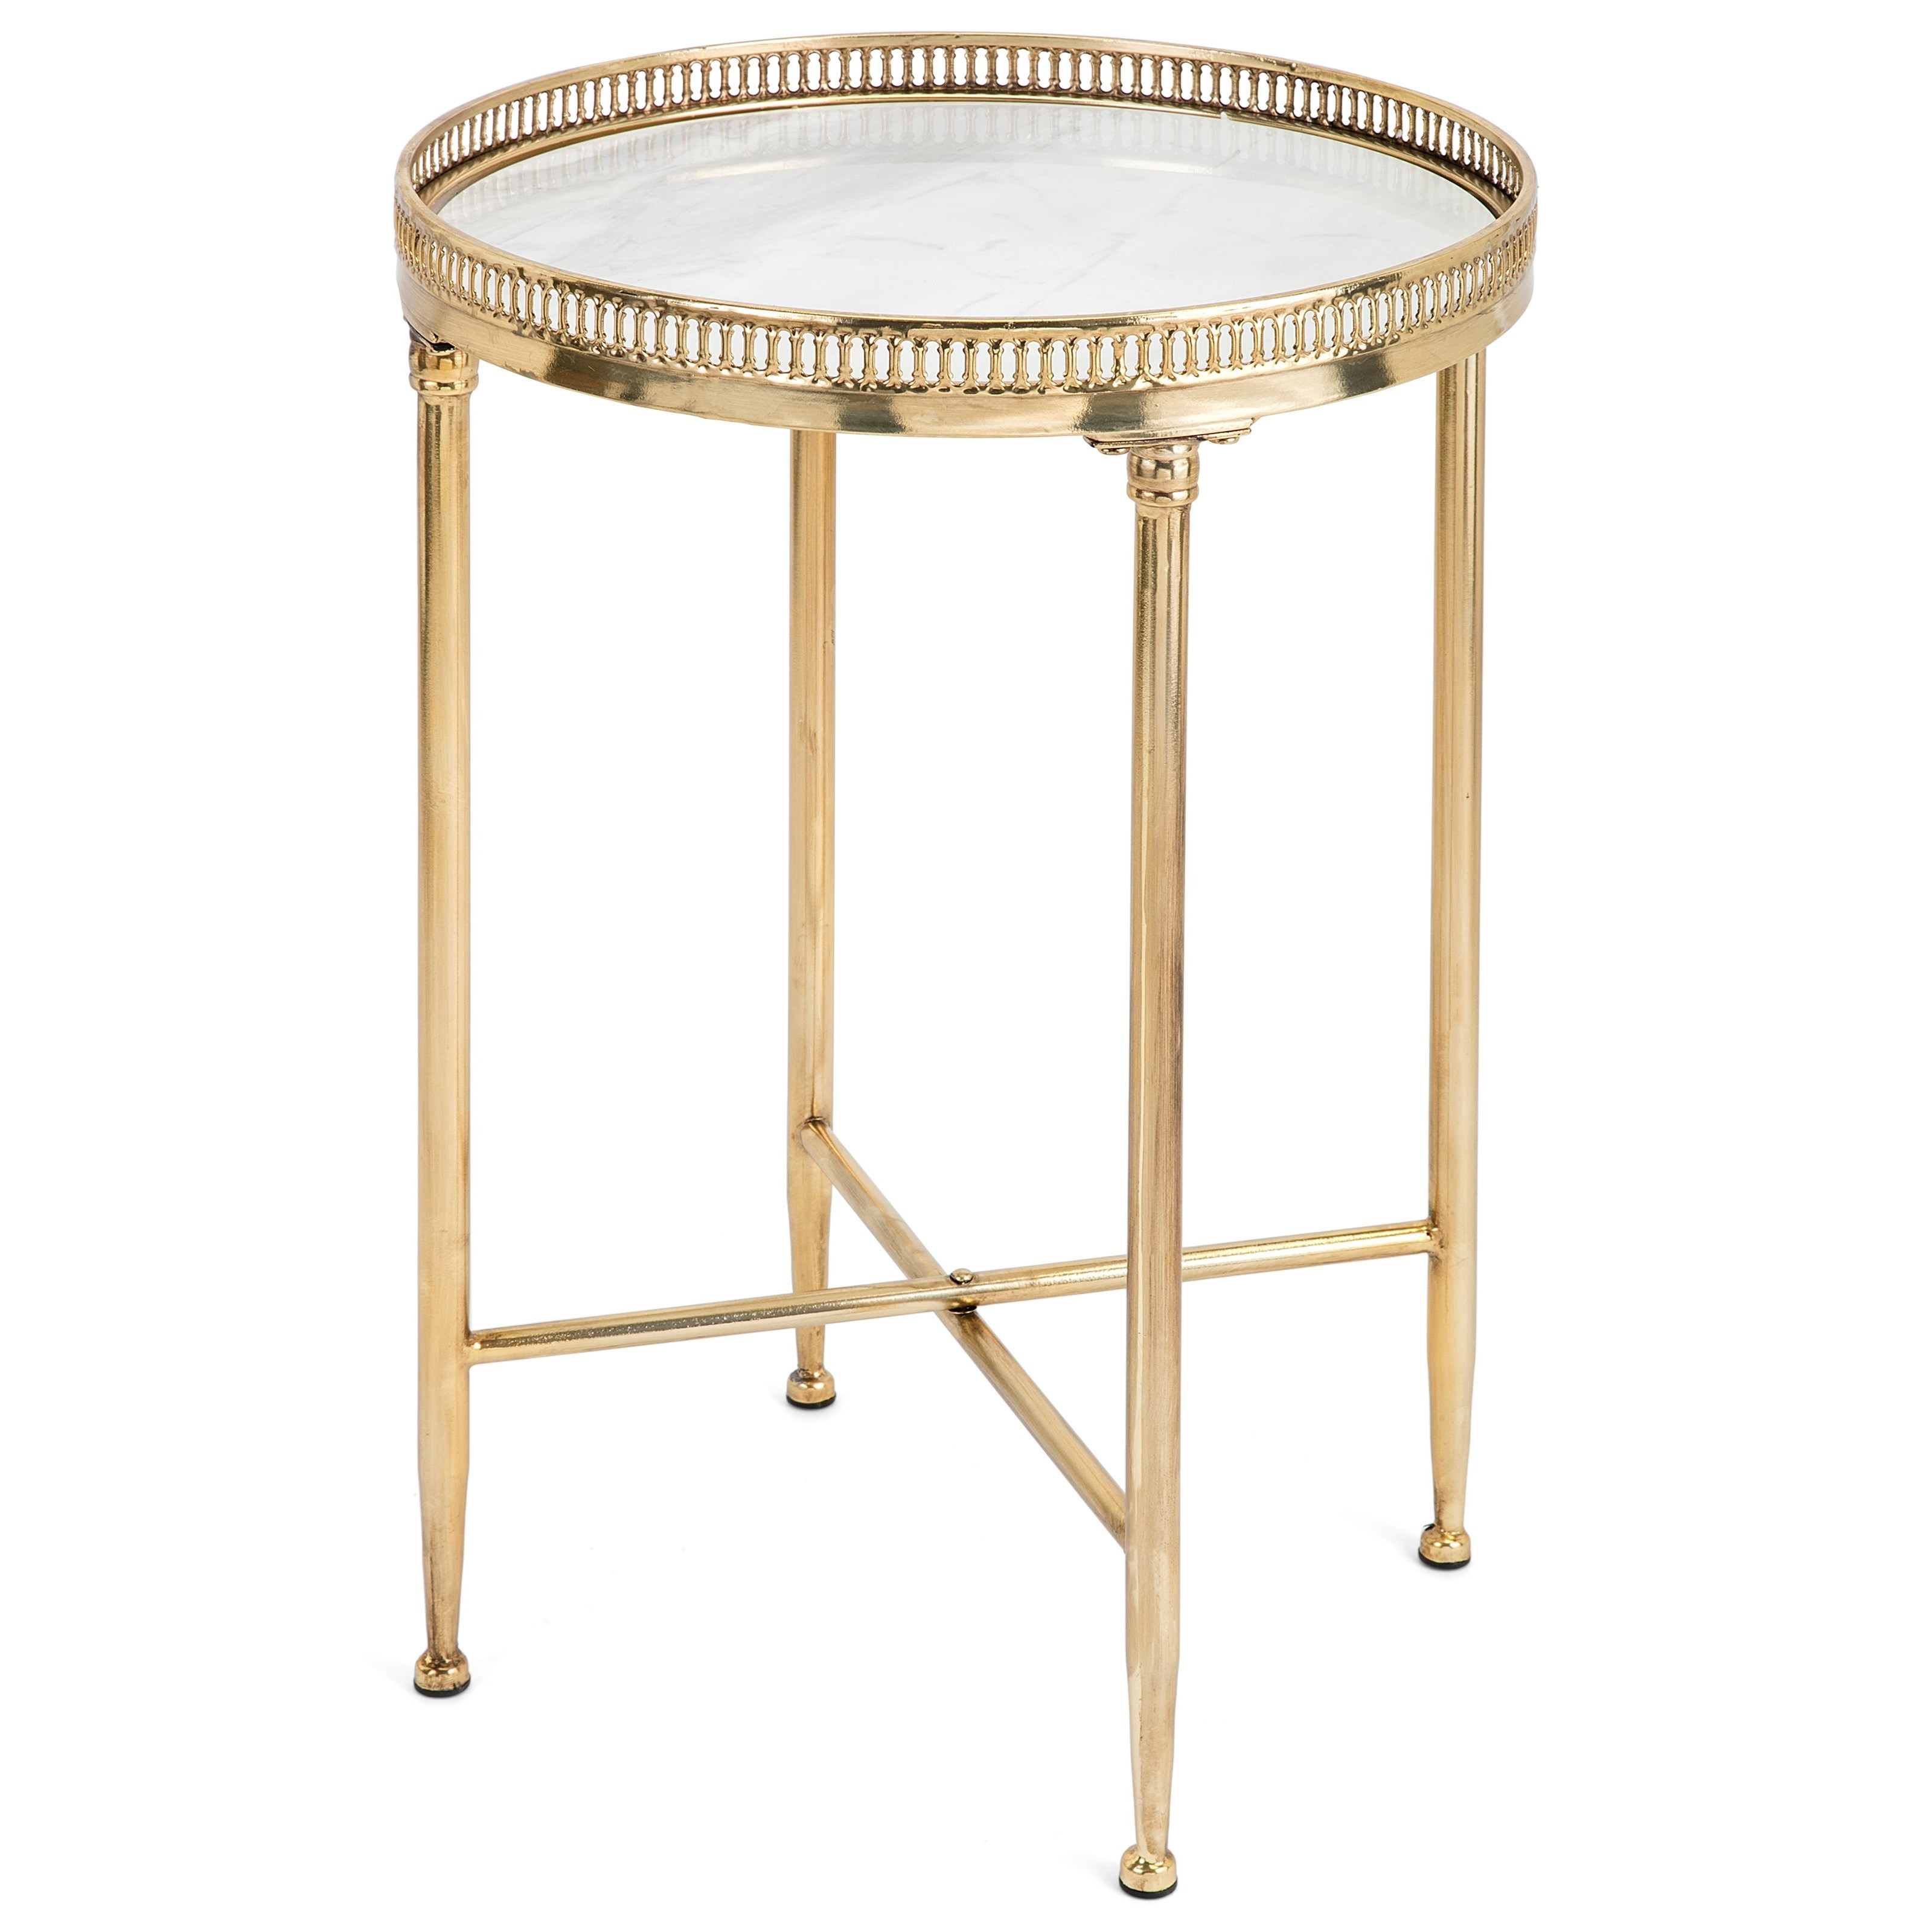 Accent Tables and Cabinets Jocelyn Occasional Table by IMAX Worldwide Home at Alison Craig Home Furnishings